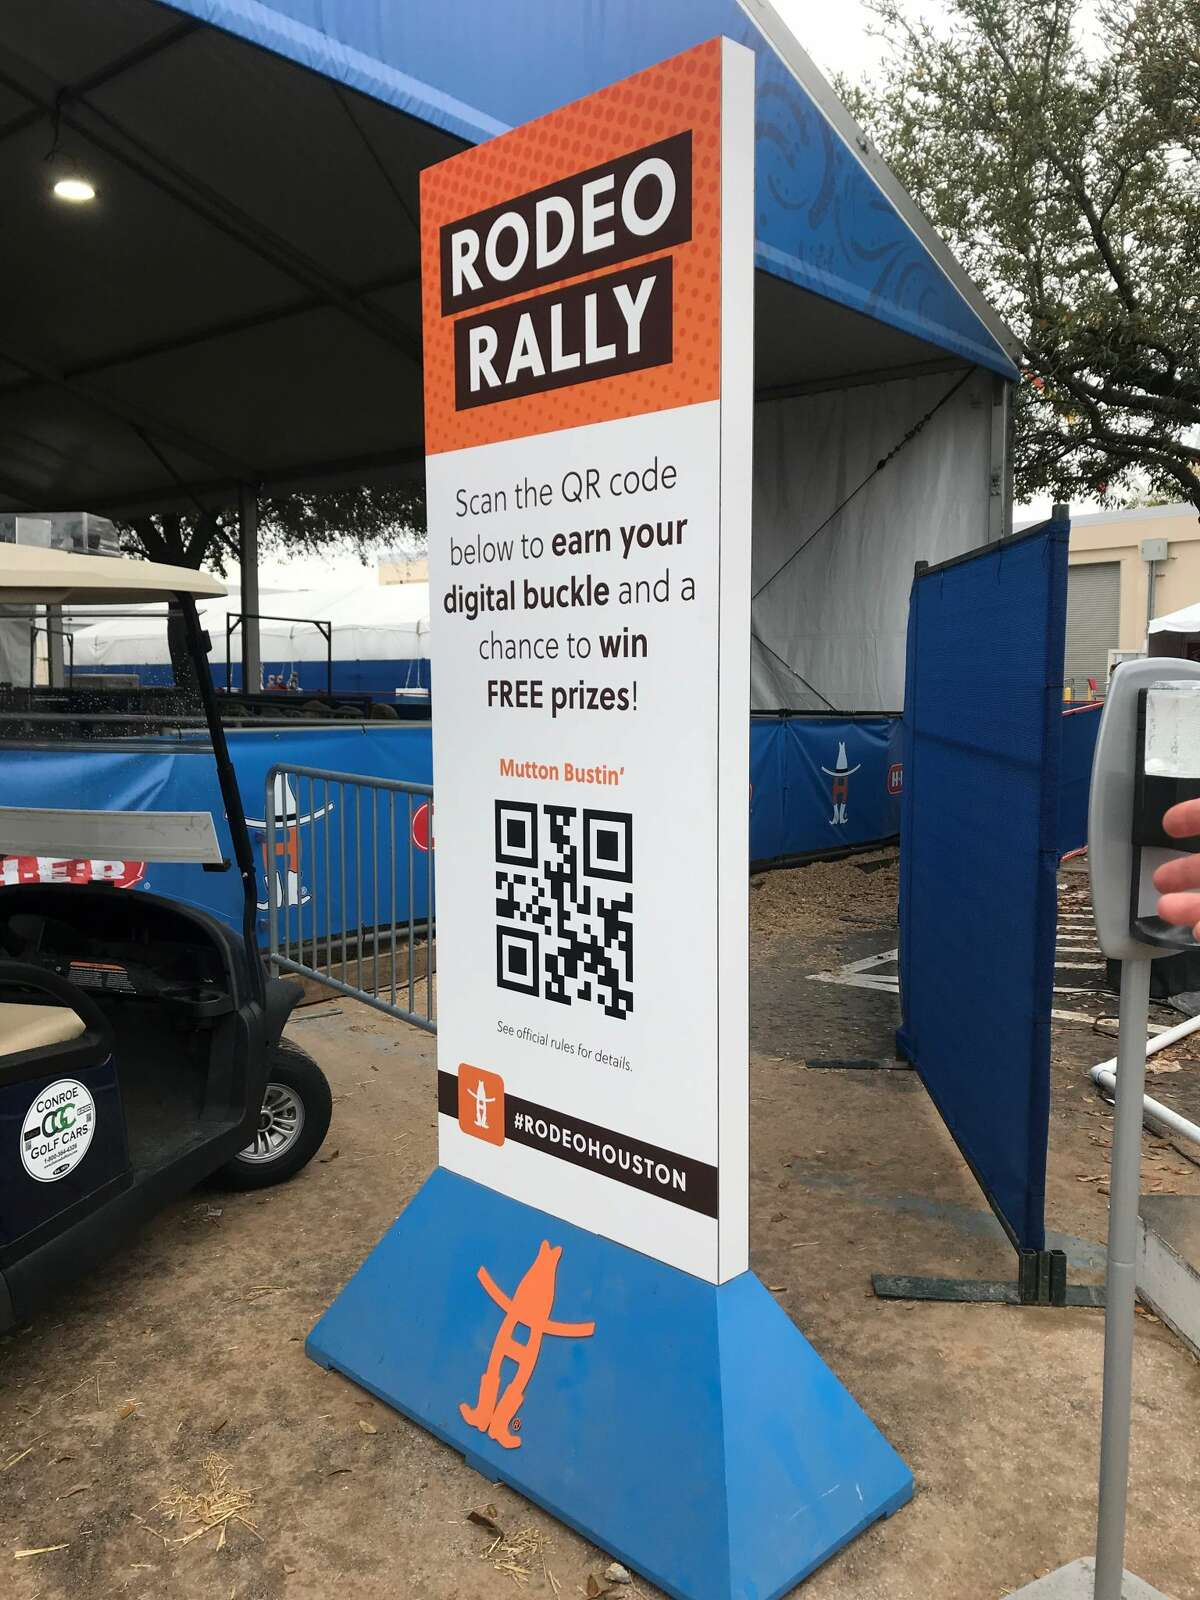 Download the Rodeo appThe RodeoHouston app offers up-to-date info on all things rodeo, including daily schedules and activities, parking info and maps, shopping and dining info, rodeo scores and athlete info and rodeo-themed camera filters. Scan the codes on these hidden Rodeo Rally signs located throughout the grounds to unlock digital buckles.